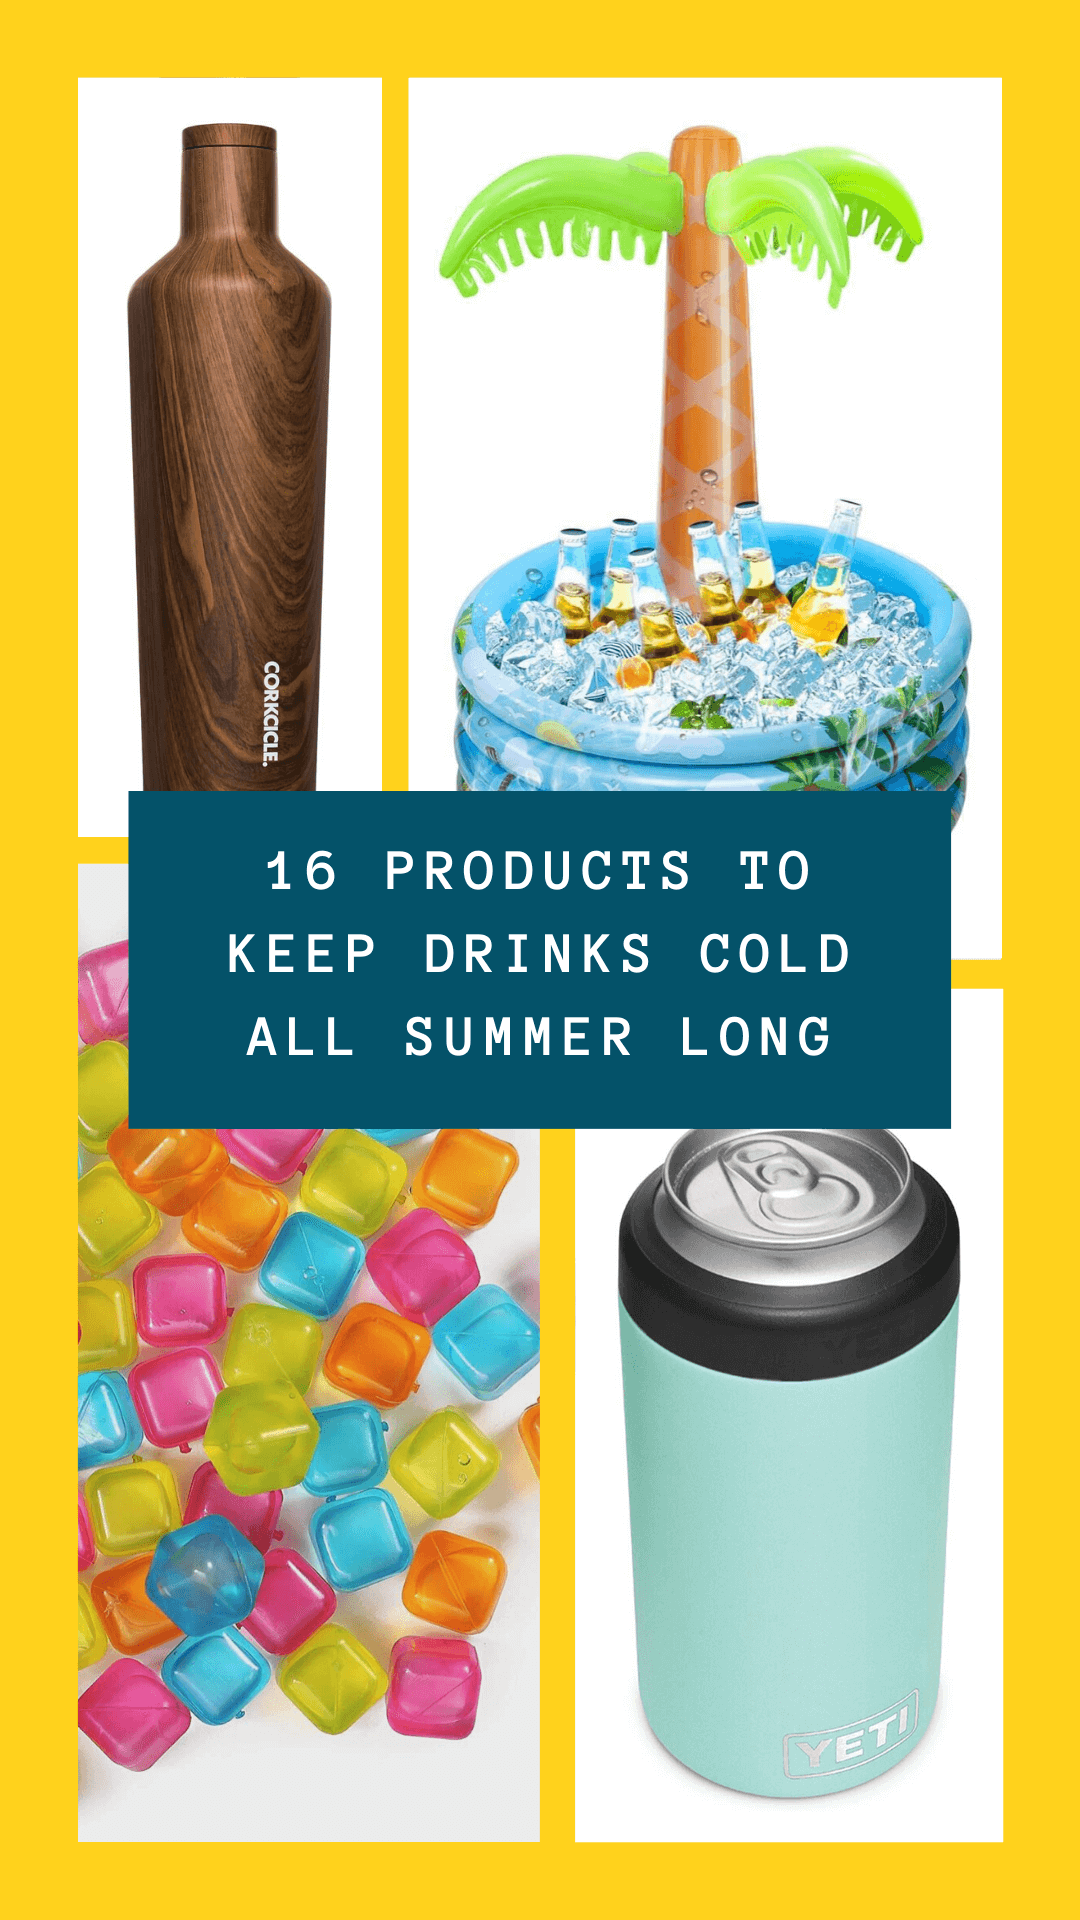 products to Keep drinks cold